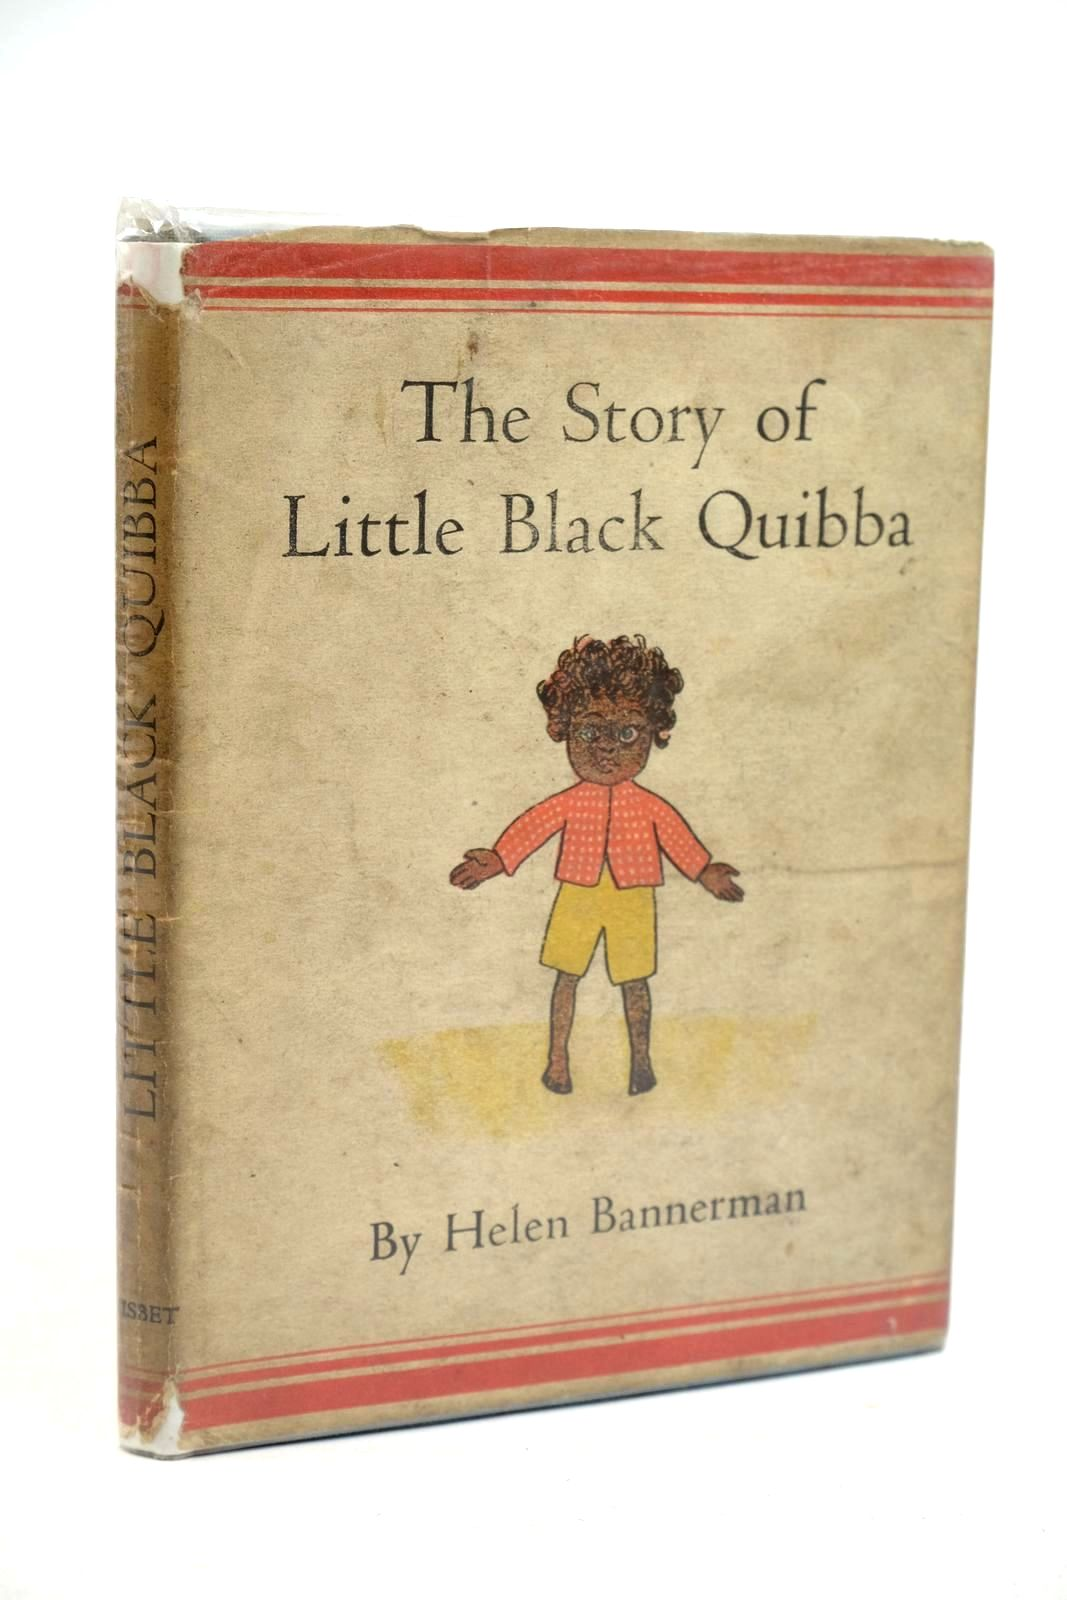 Photo of THE STORY OF LITTLE BLACK QUIBBA written by Bannerman, Helen illustrated by Bannerman, Helen published by Nisbet & Co. Ltd. (STOCK CODE: 1320379)  for sale by Stella & Rose's Books